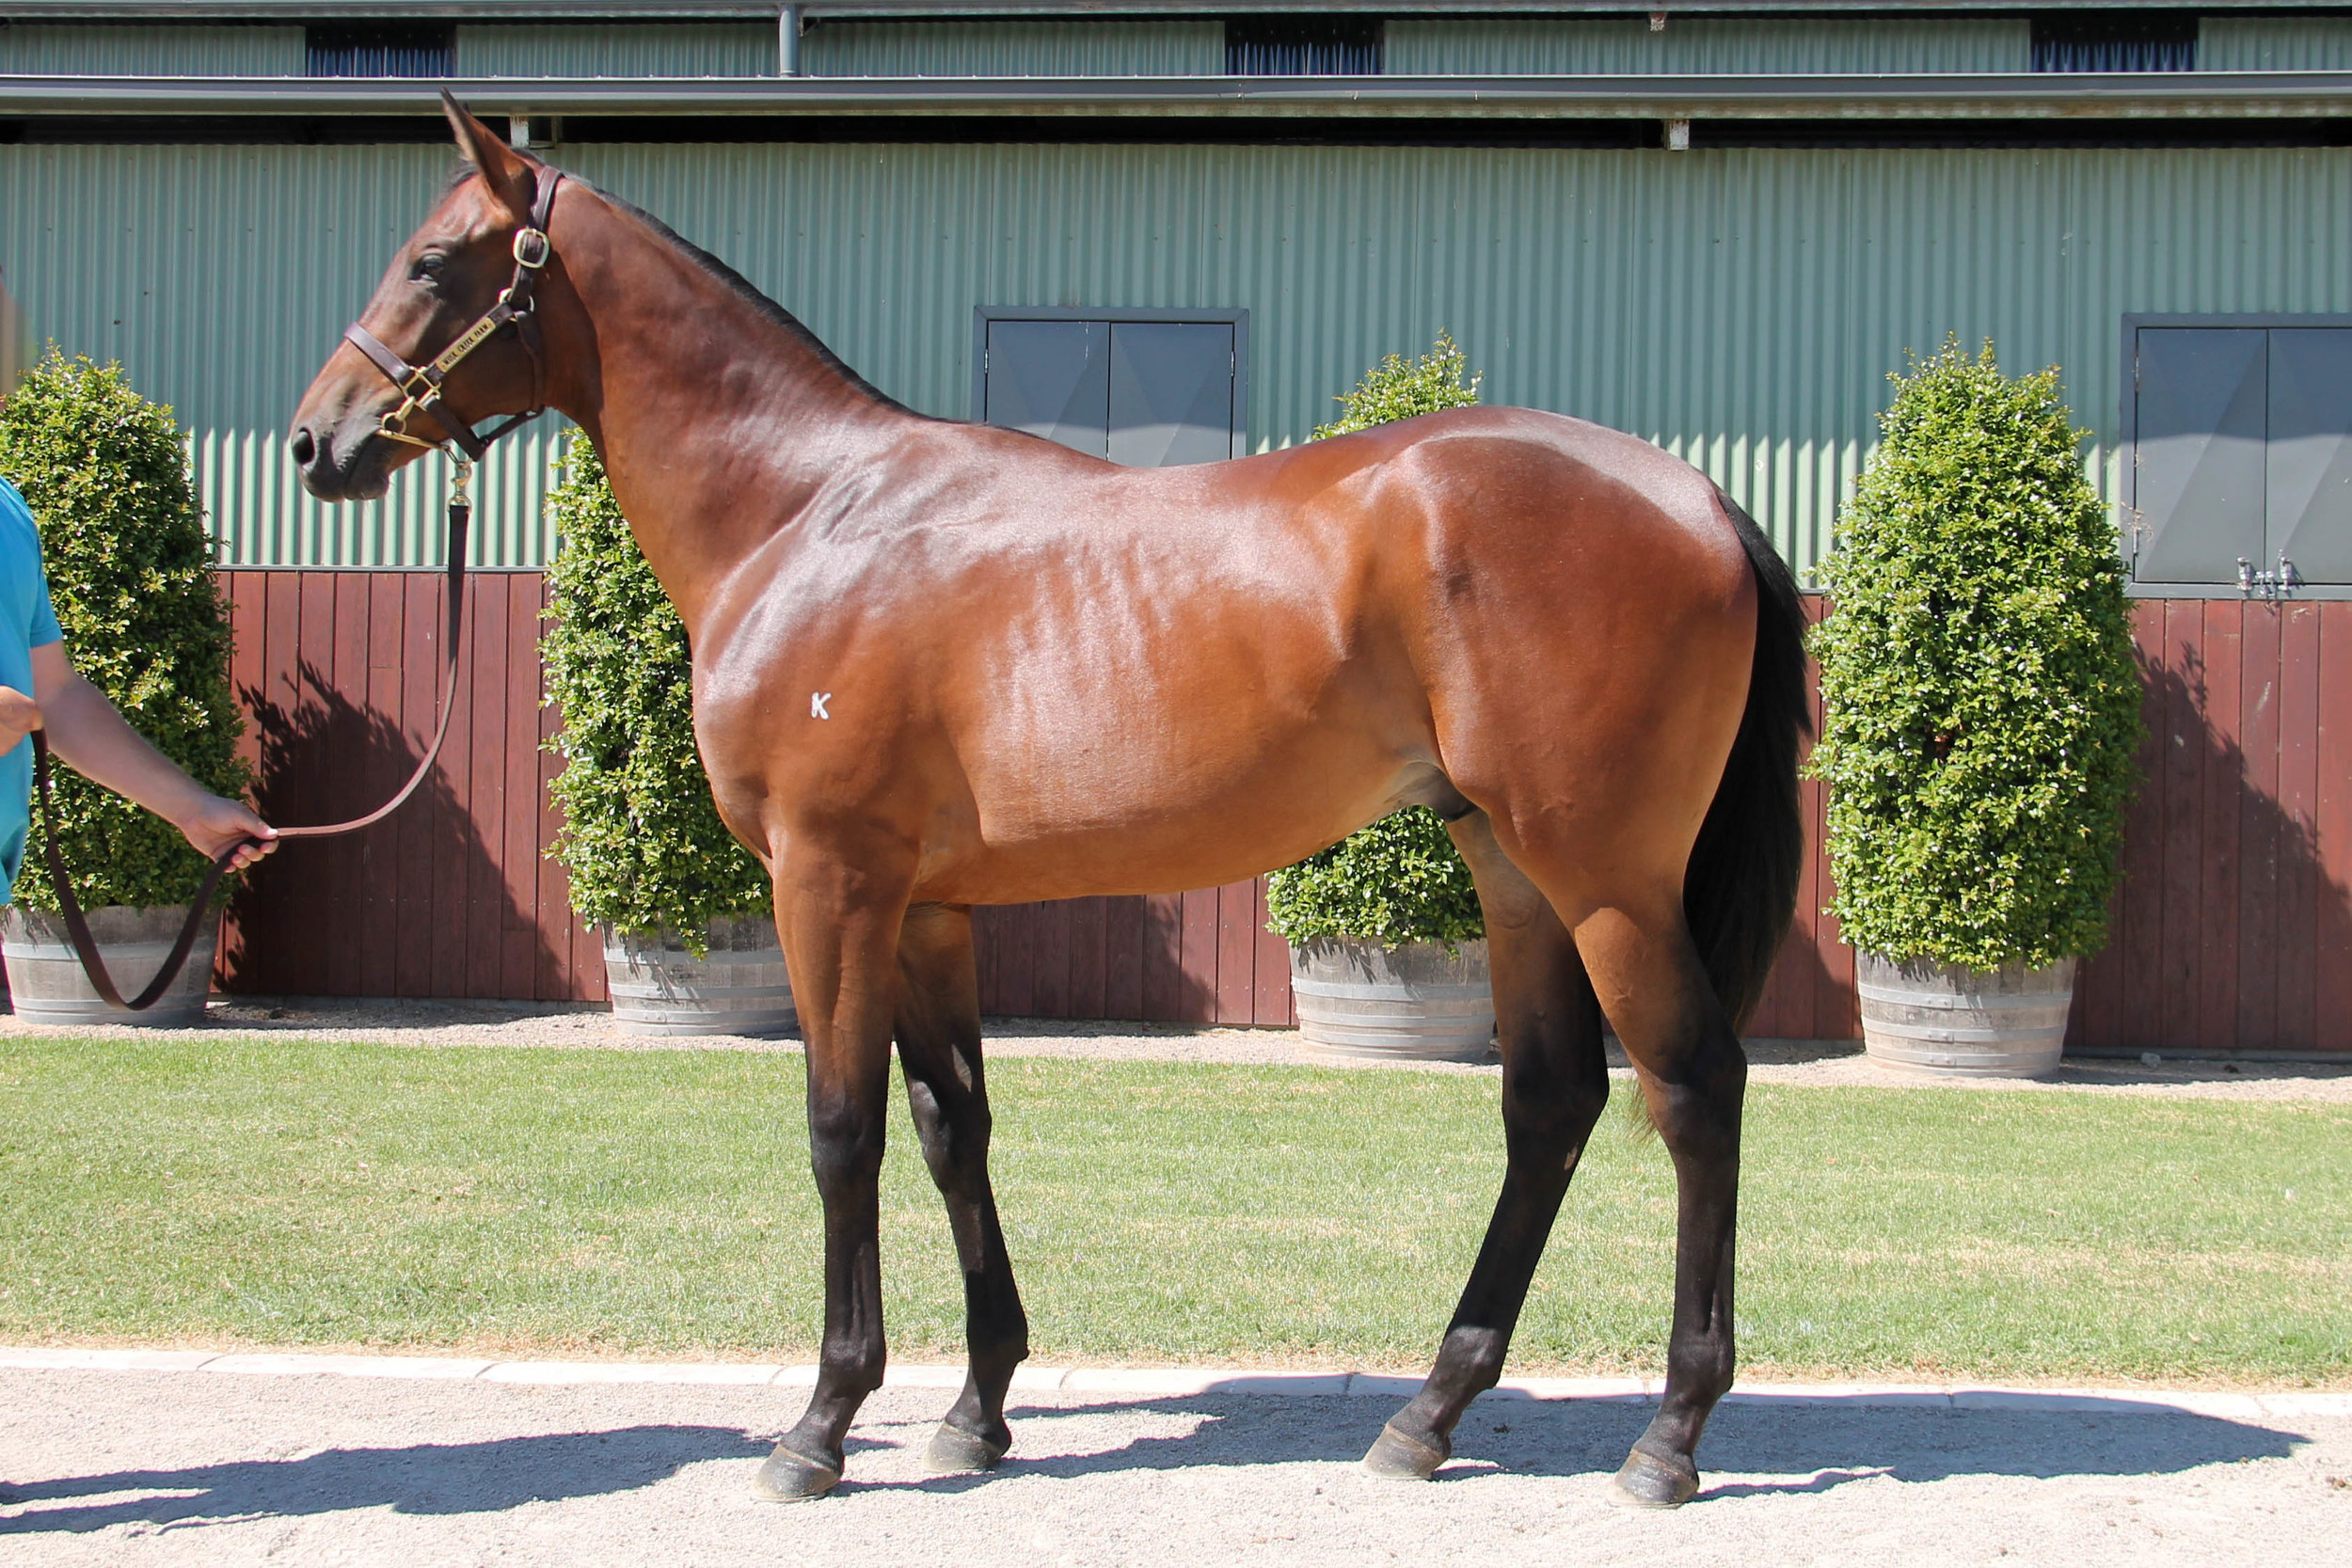 Lot 557 - Real Impact (JPN) x Neriani 17 Colt - Sold to D Wallace/Waterford Bloodstock for $30,000